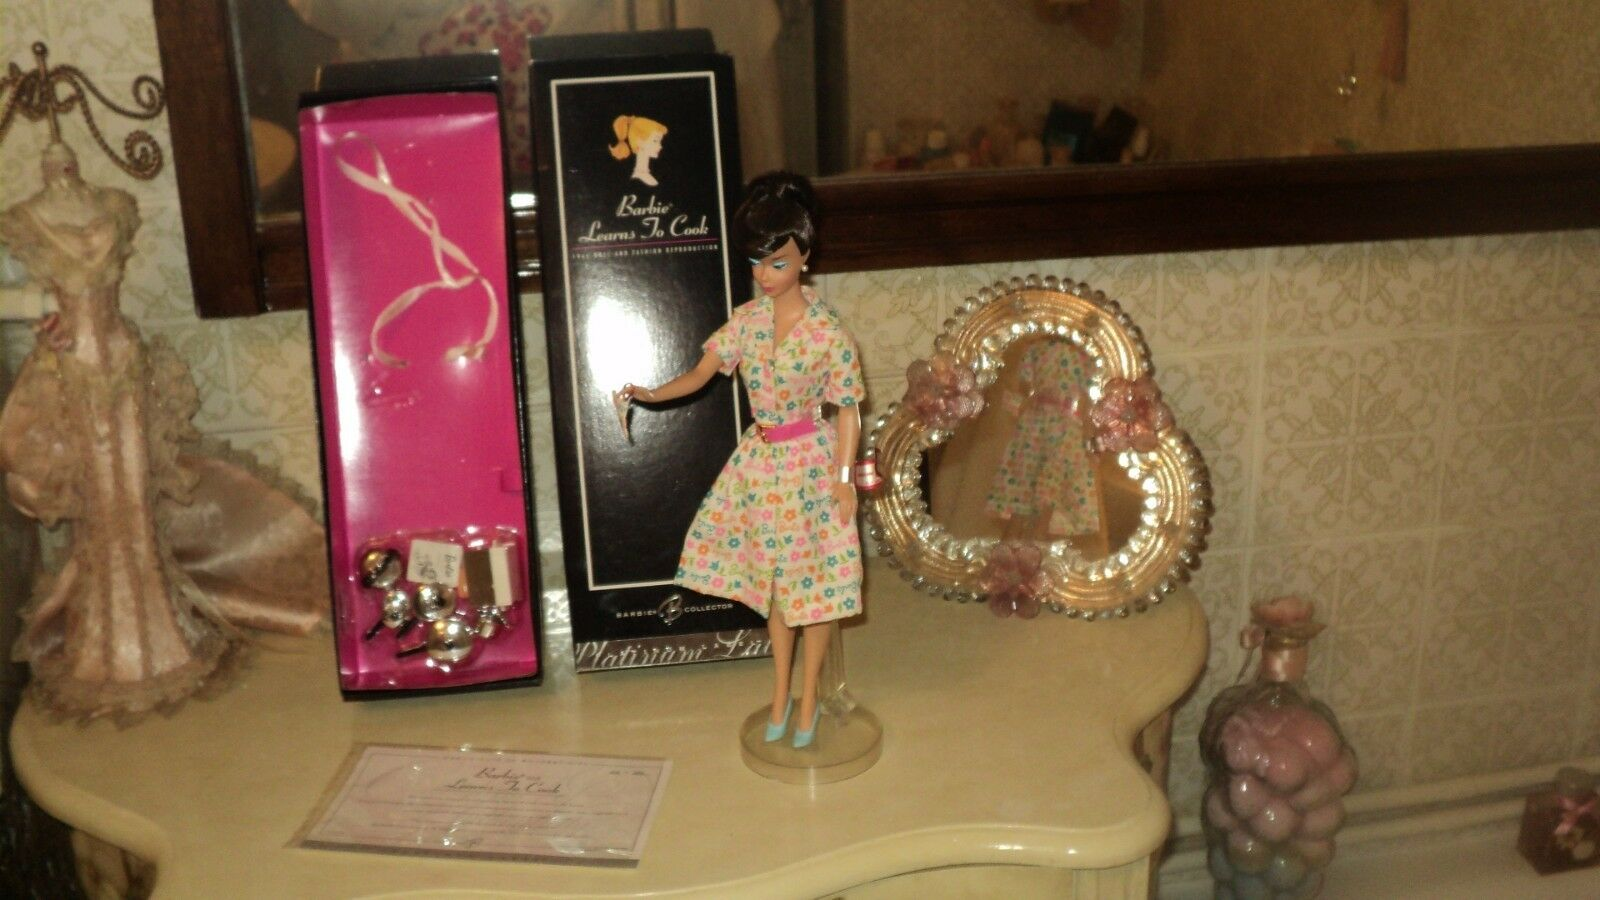 BRUNETTE SWIRL BARBIE LEARNS TO COOK 1965 2006 REPRODUCTIONPLATINUM LABEL